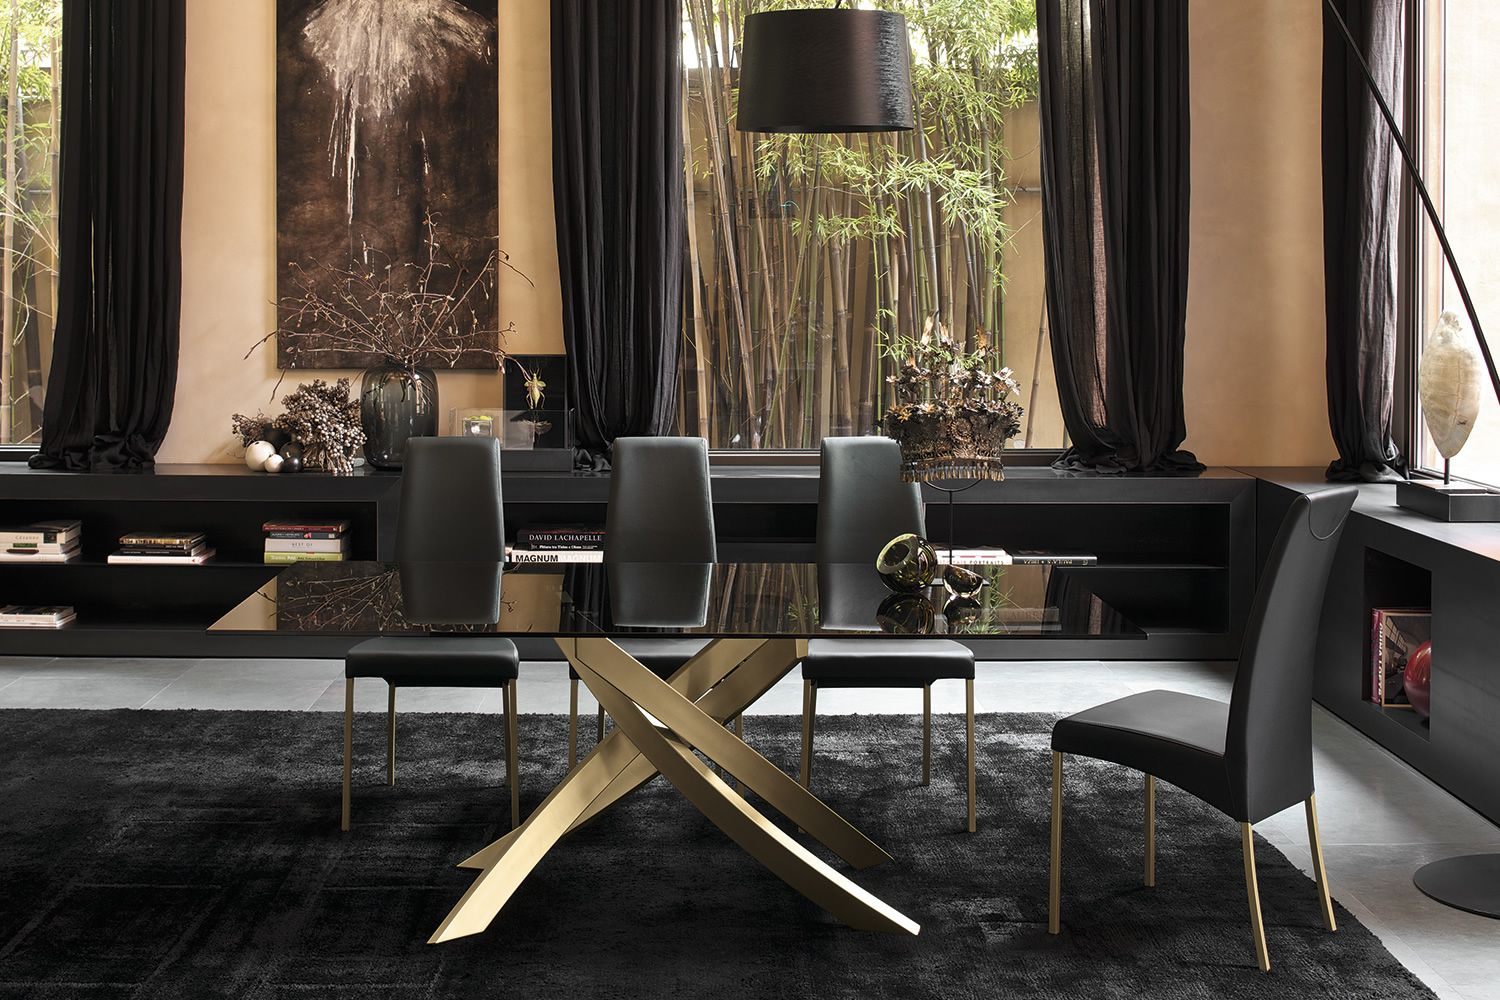 Table with gold lacquered pedestral and top in glossy black lacquered glass